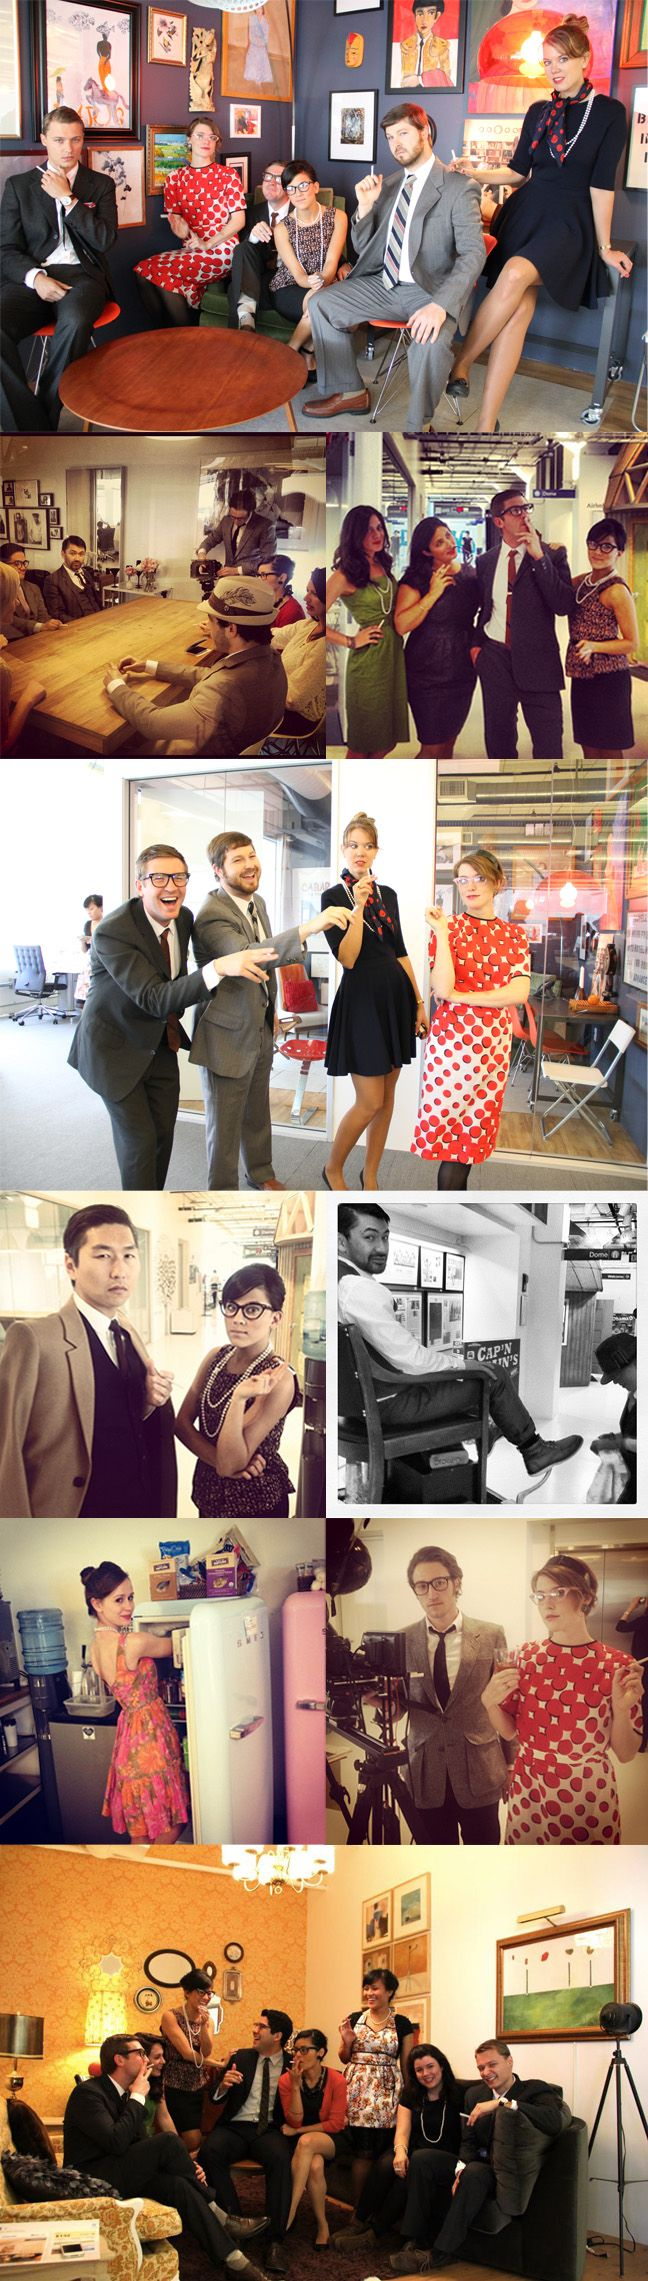 22 best Party Theme: Mad Men images on Pinterest | Mad men party ...